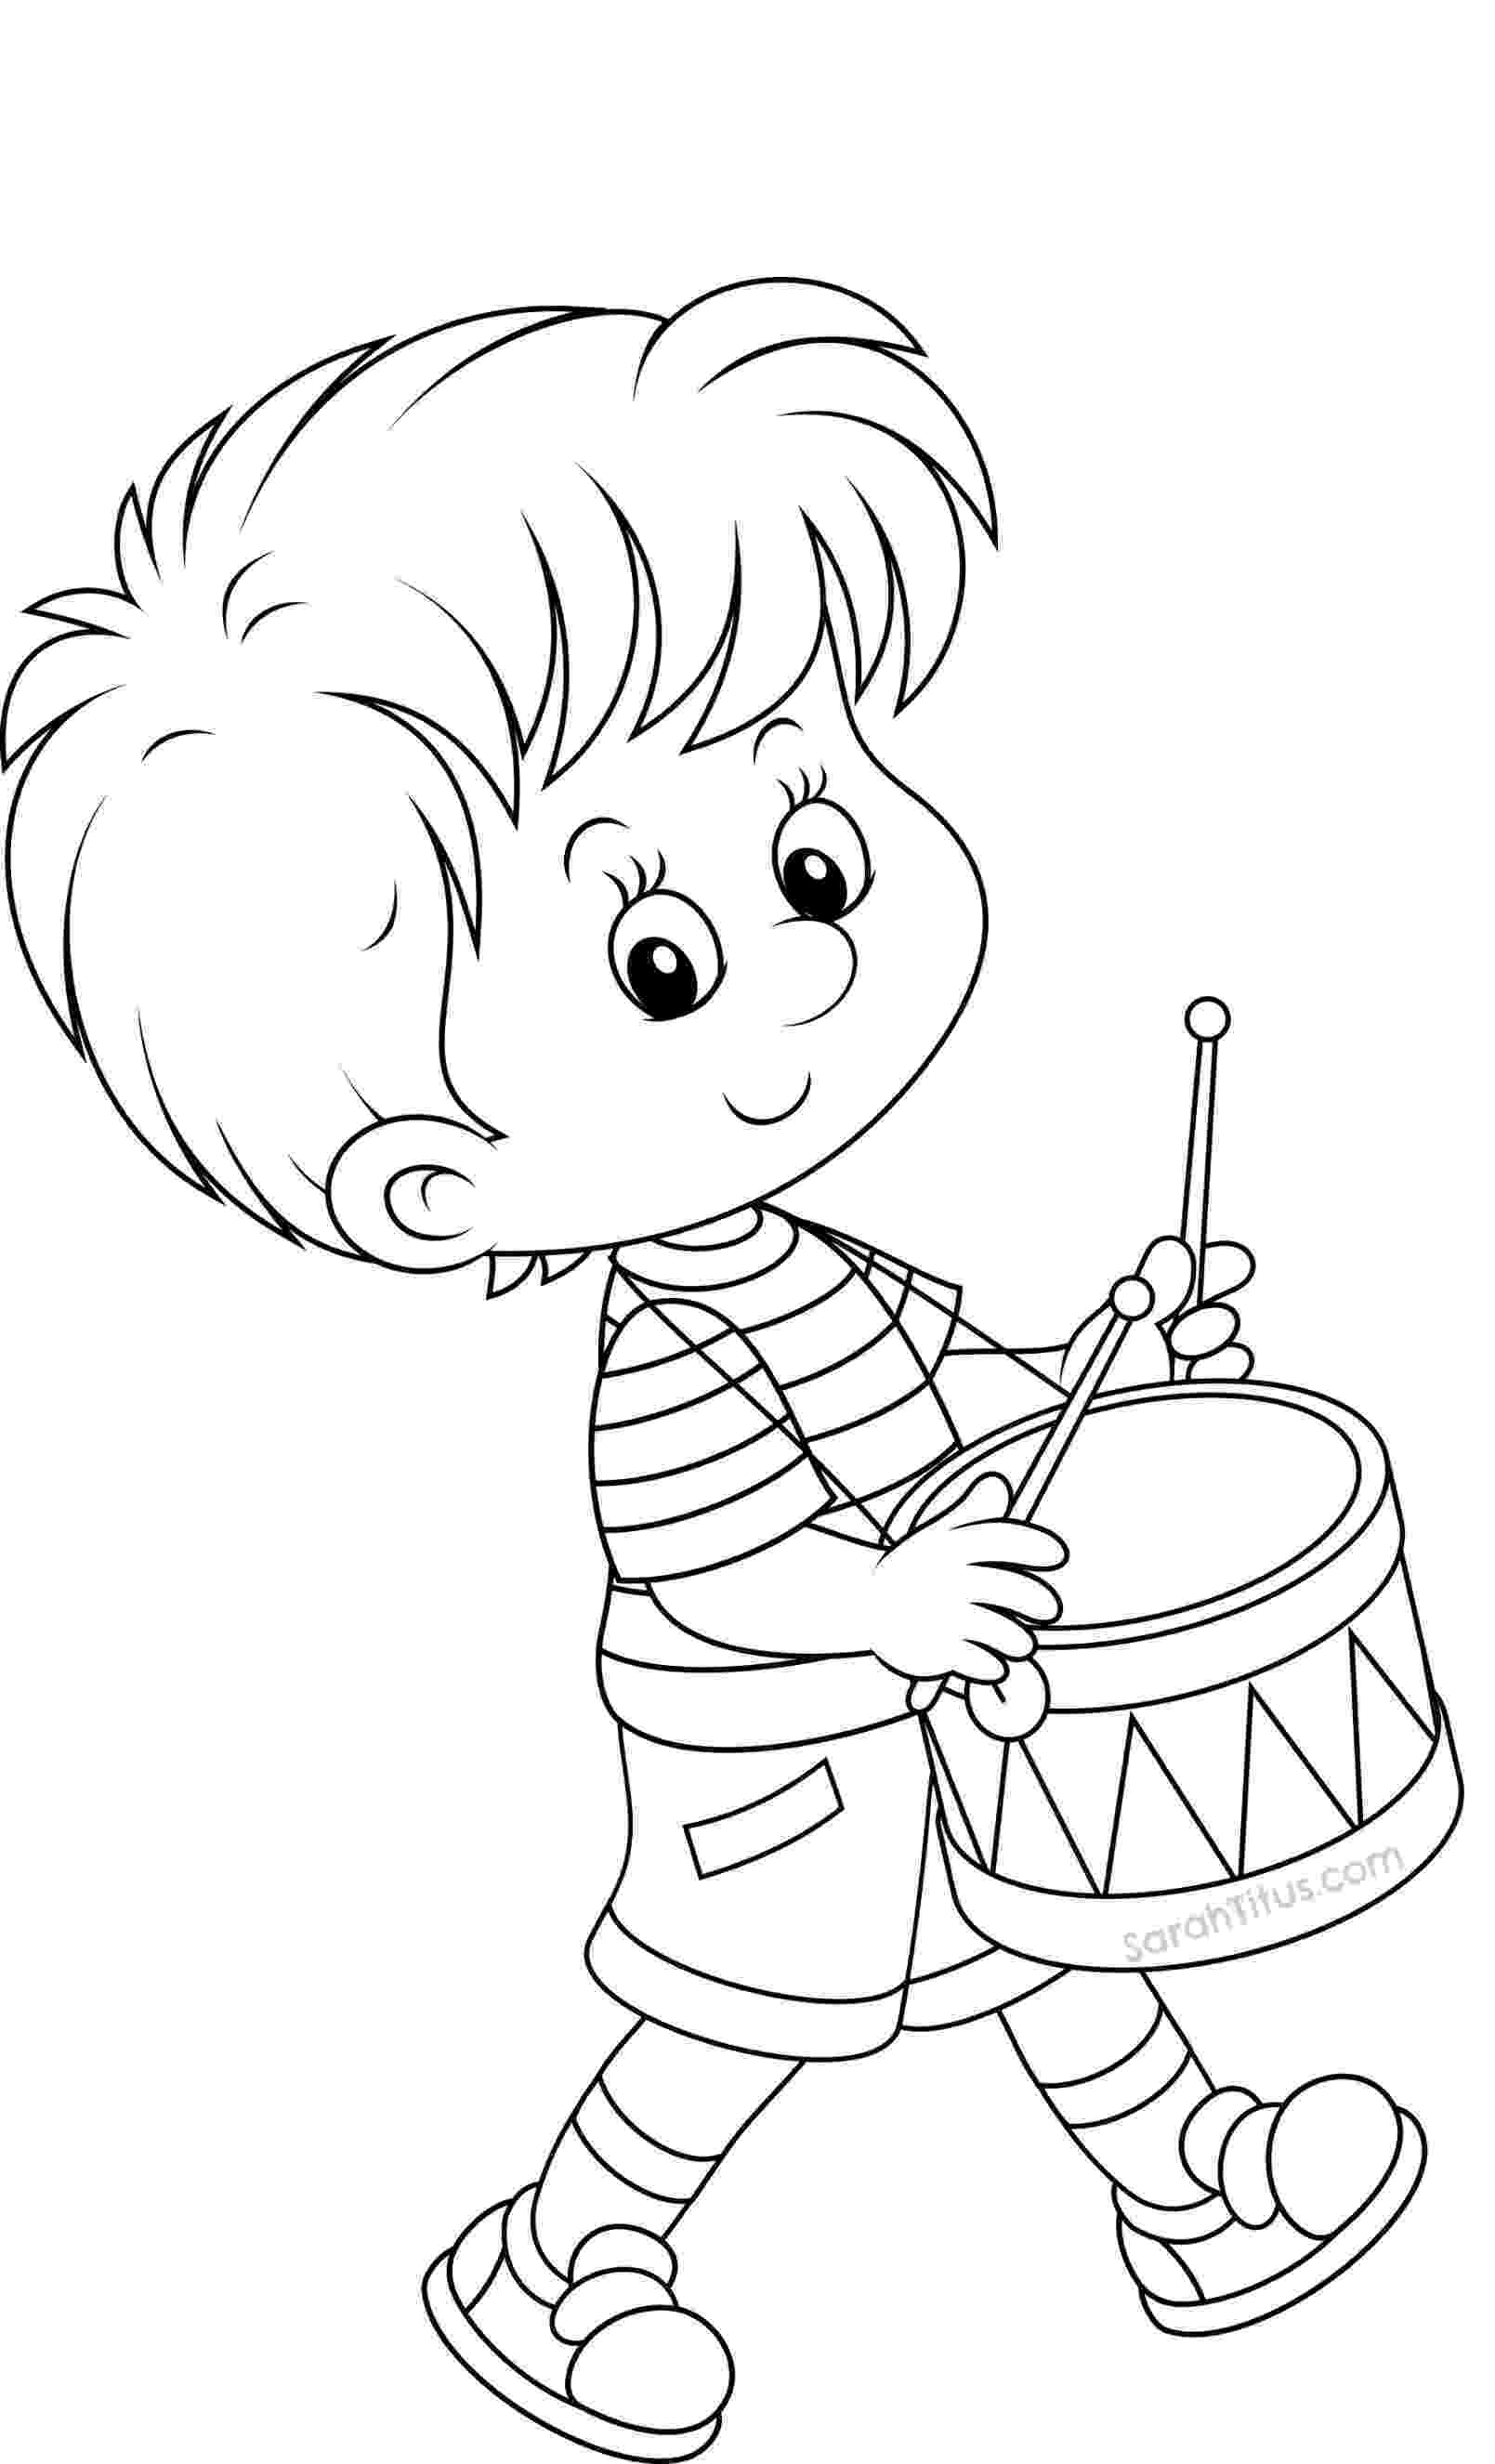 colouring pages for play school kid color pages back to school play pages colouring school for